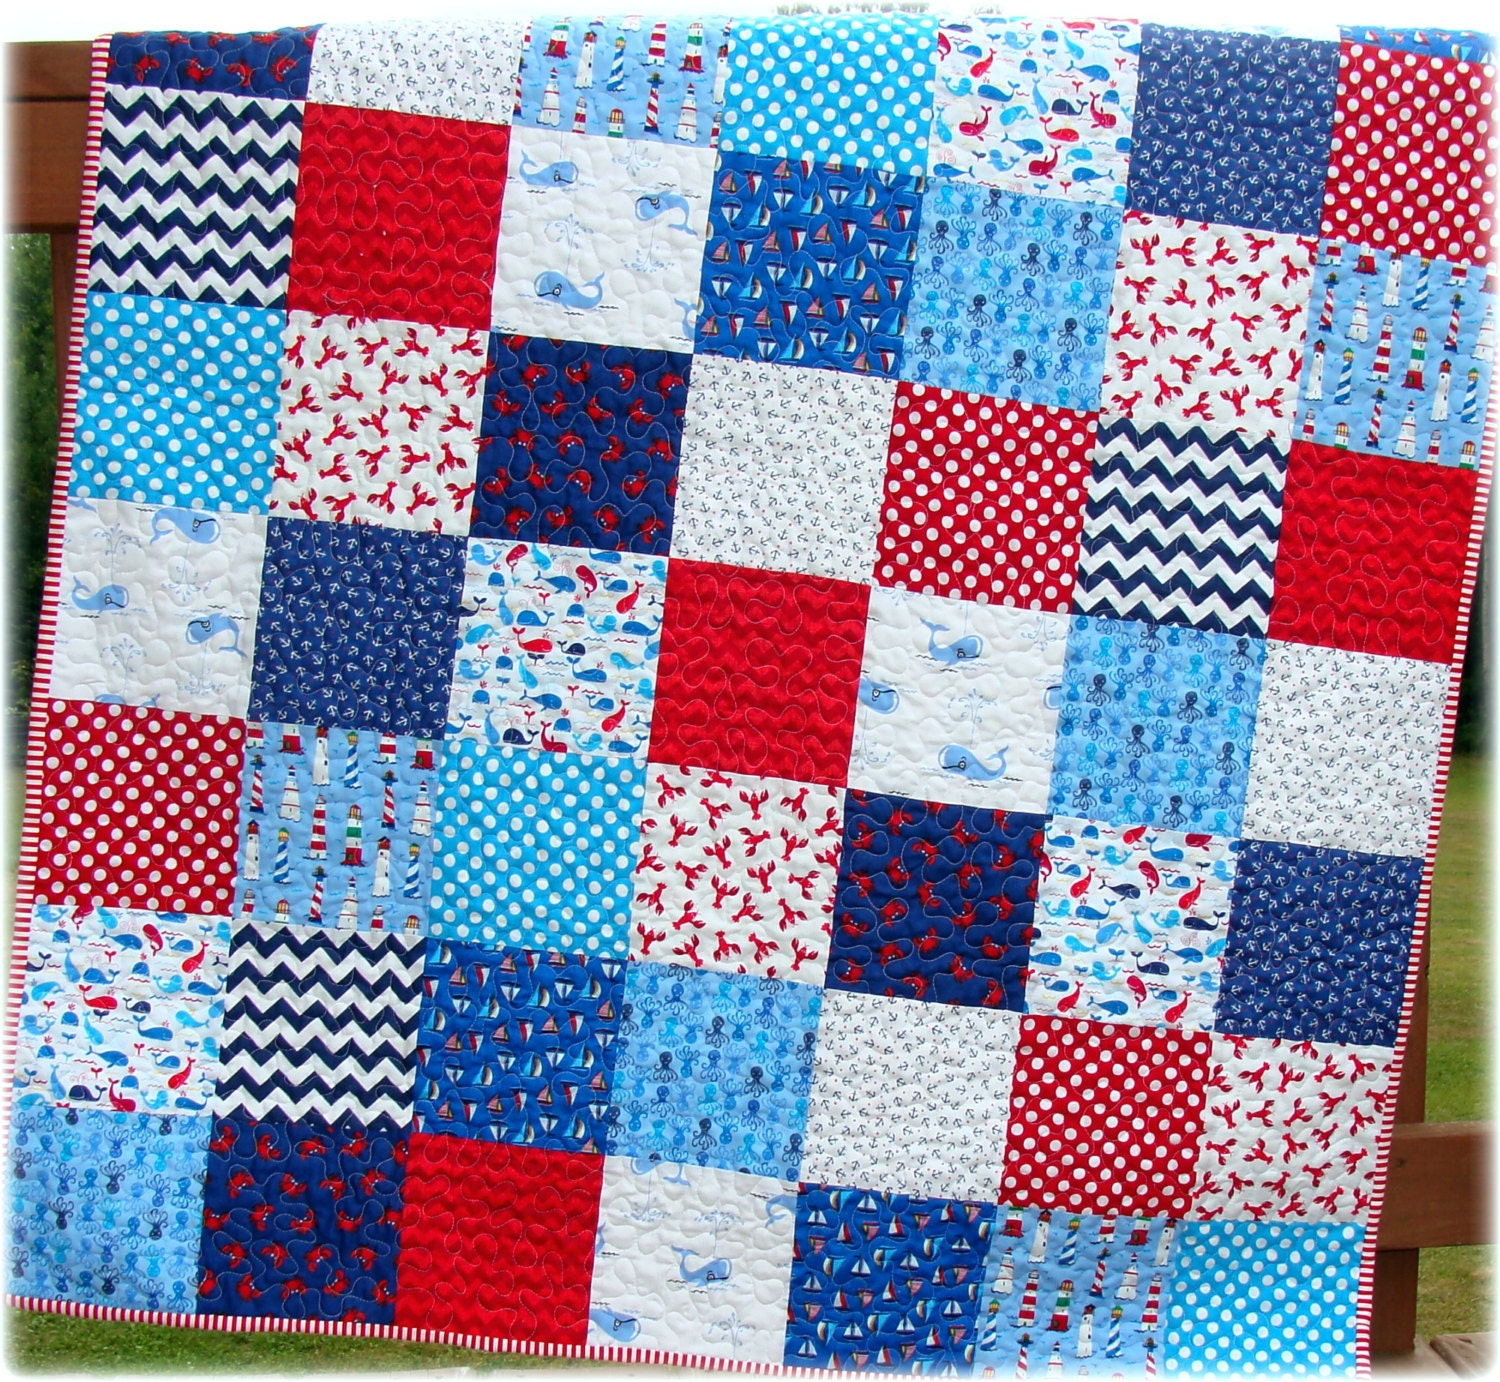 Patchwork Quilt For A Boy: Baby Boy Quilt Nautical Patchwork Whales By CarleneWestberg